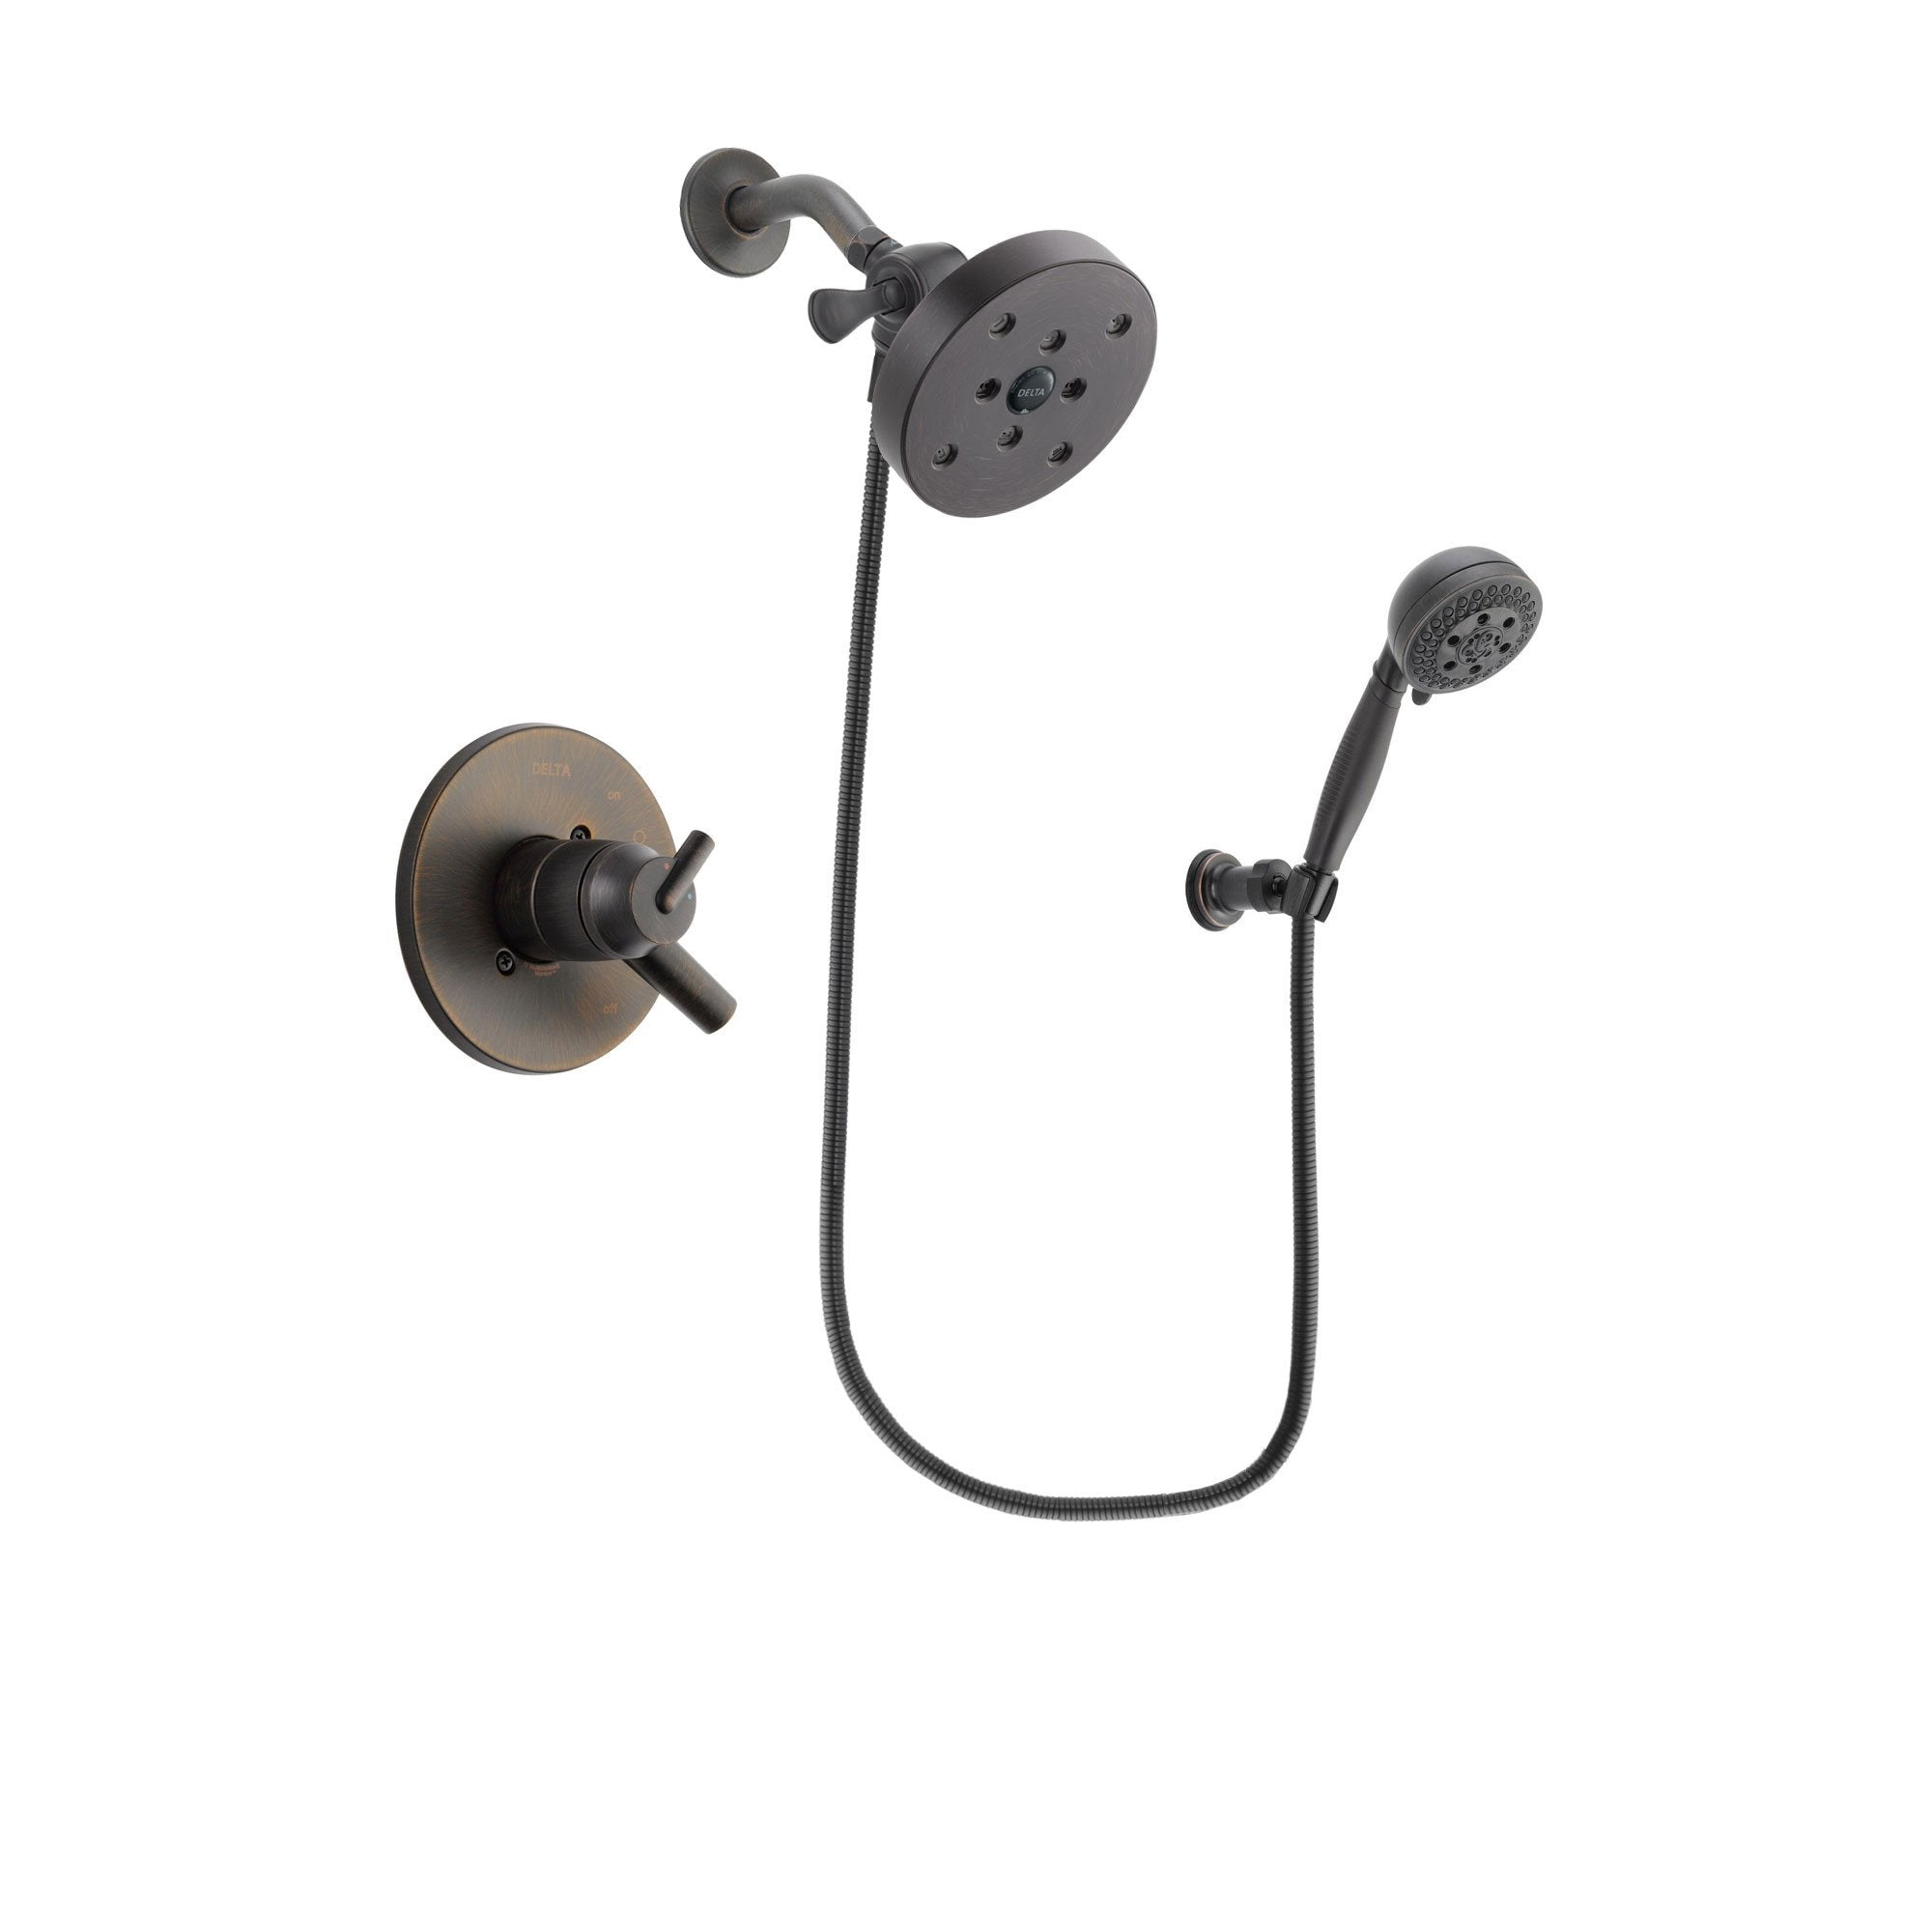 Delta Trinsic Venetian Bronze Shower Faucet System with Hand Shower DSP2852V